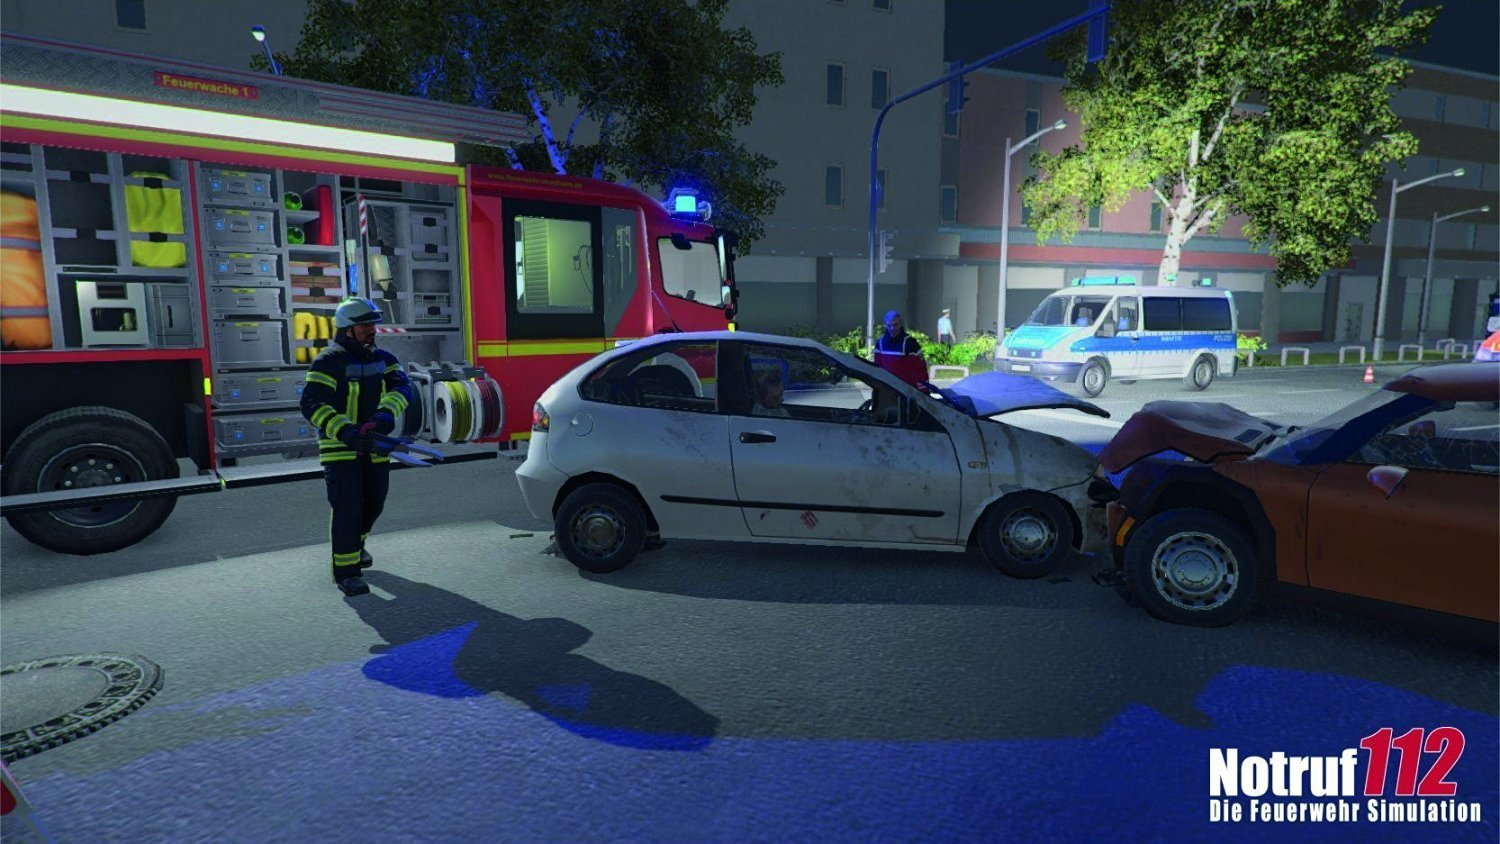 Official Emergency Call 112 - The Fire Fighting Simulation (PC)